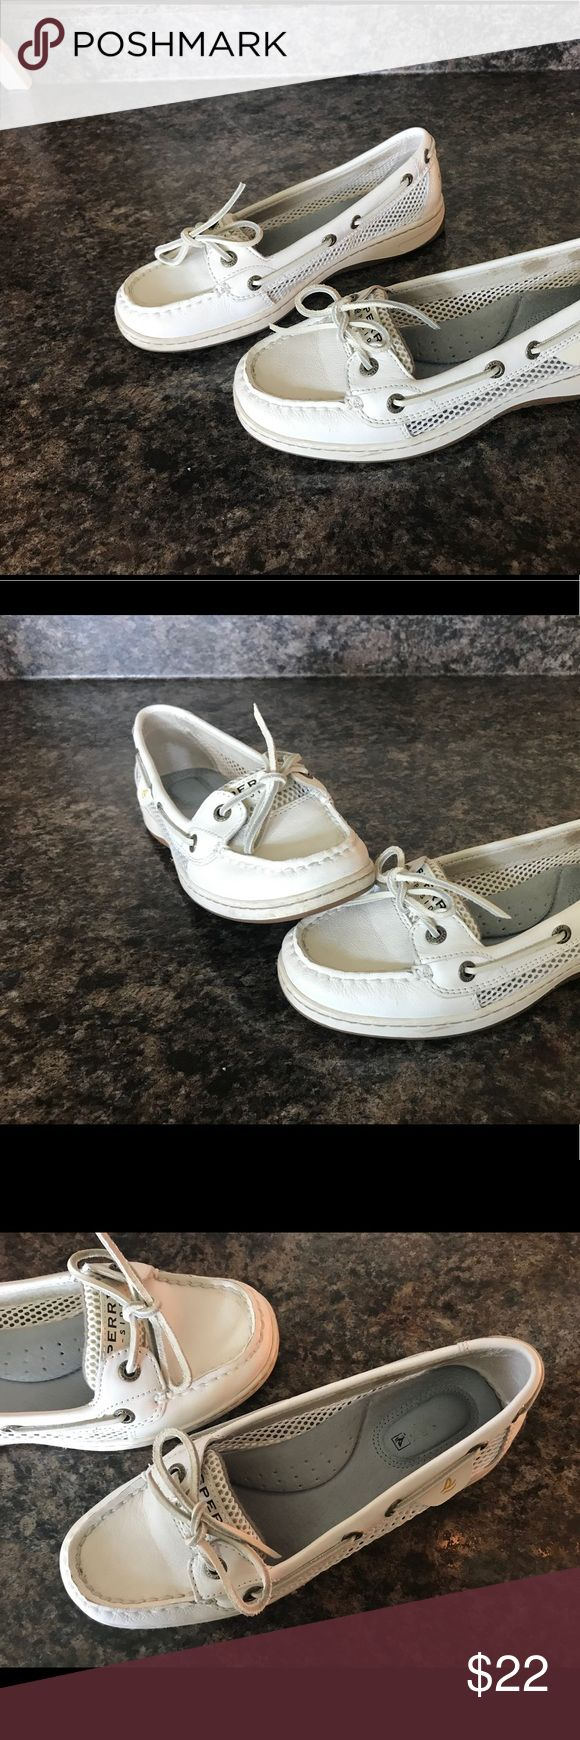 Sperry Top Sider Angelfish Mesh Leather Boat Shoe Women sz: 6.5 - gently used condition Sperry Top-Sider Shoes Flats & Loafers